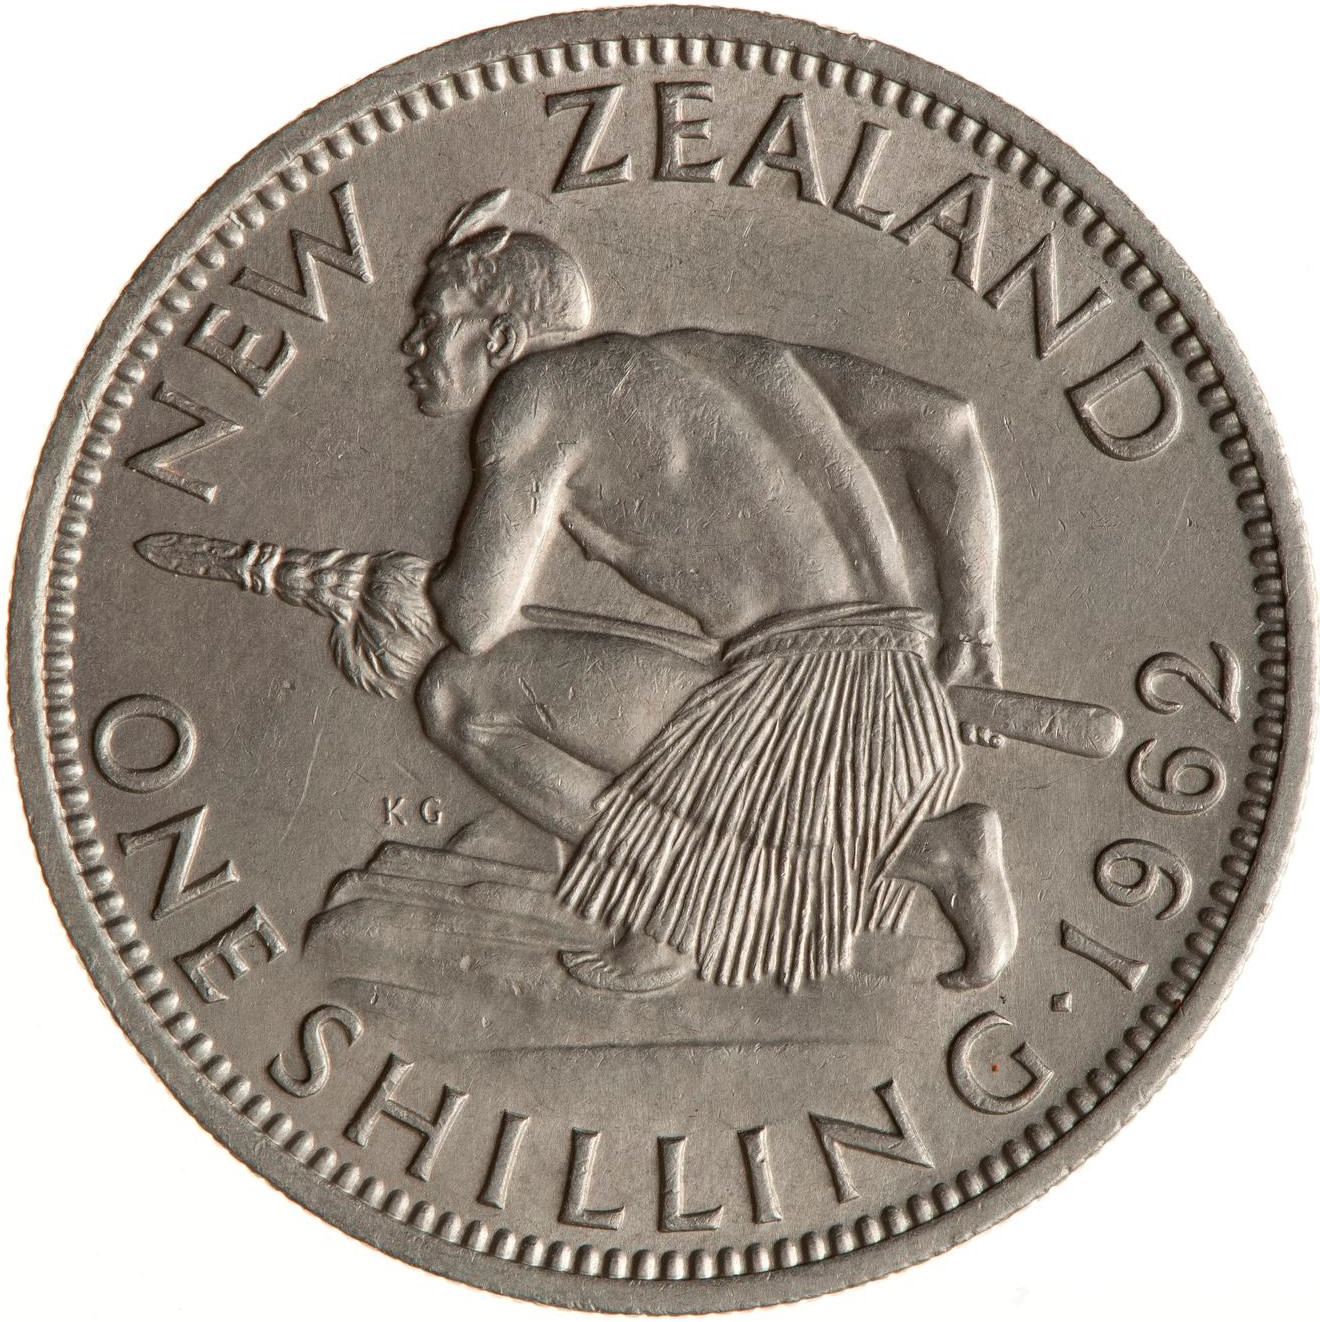 Shilling 1962: Photo Coin - 1 Shilling, New Zealand, 1962